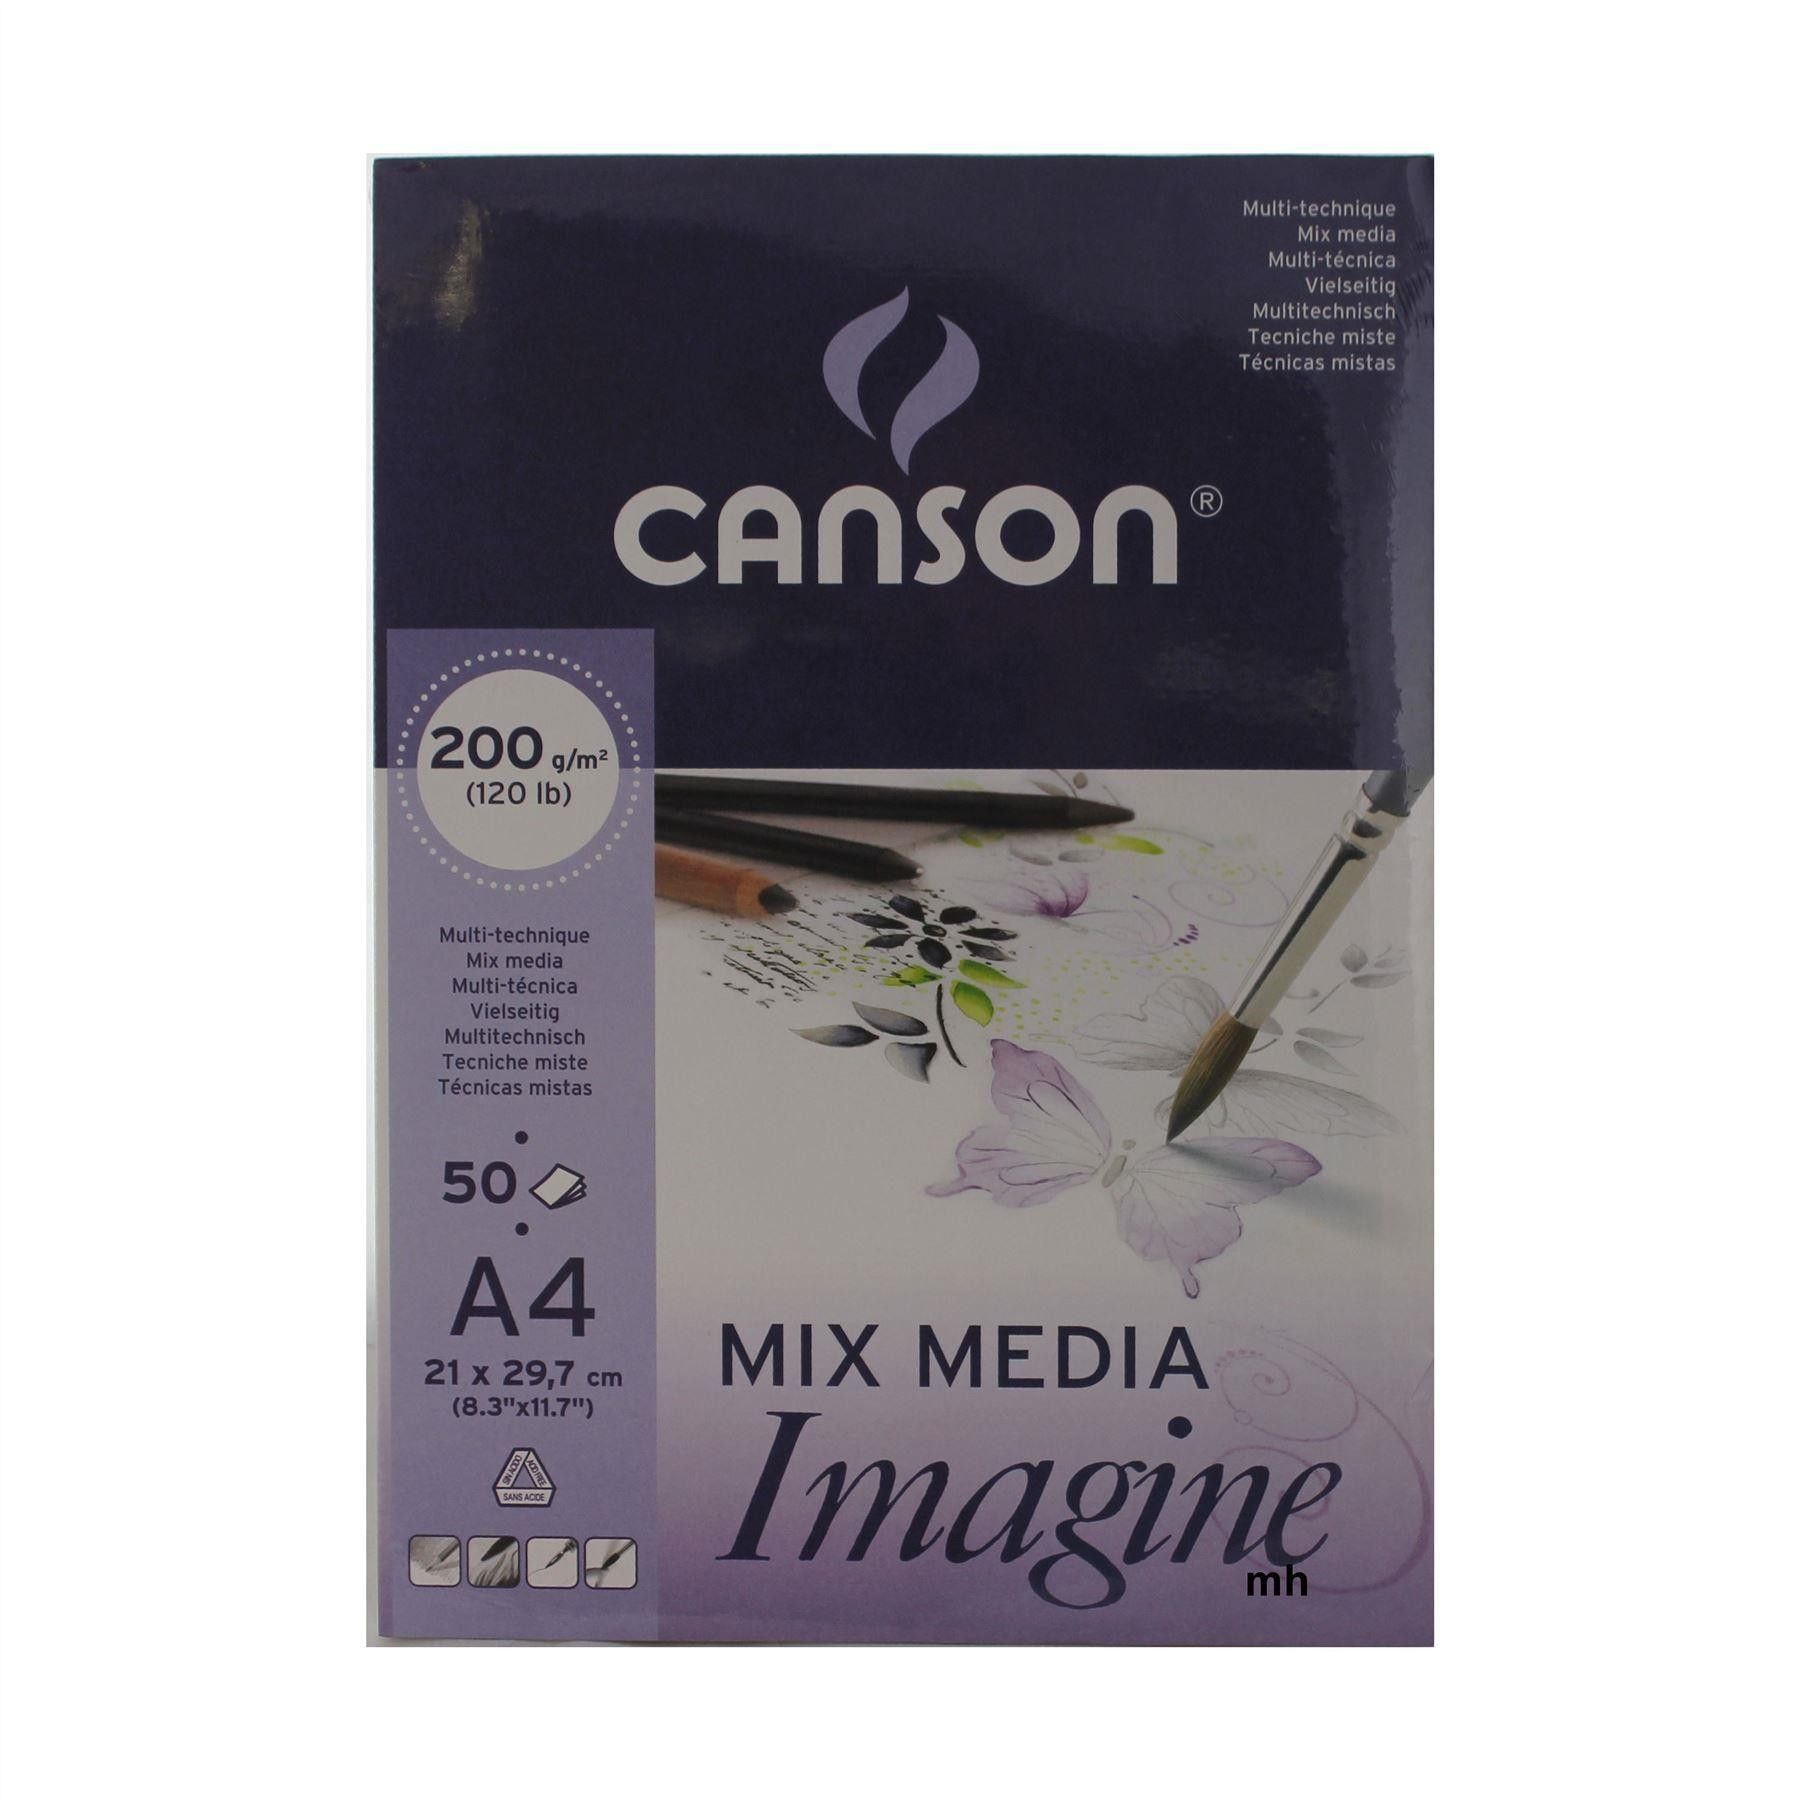 Canson Mixed Media Imagine Pad A4 200gsm 50 Sheets Artists Drawing